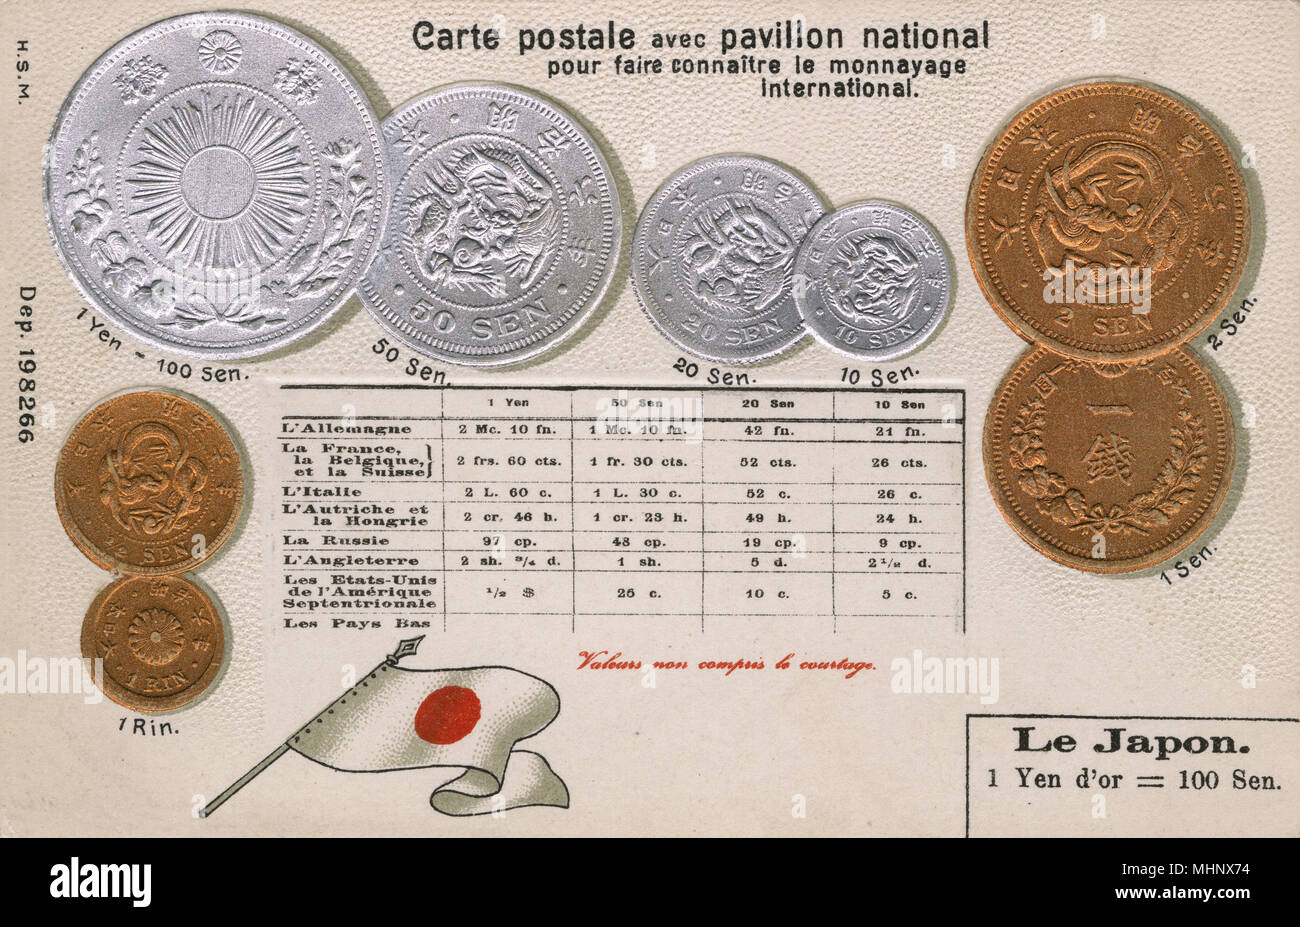 Postcard explaining the currency of Japan, with equivalent values for other countries.       Date: circa 1900 - Stock Image